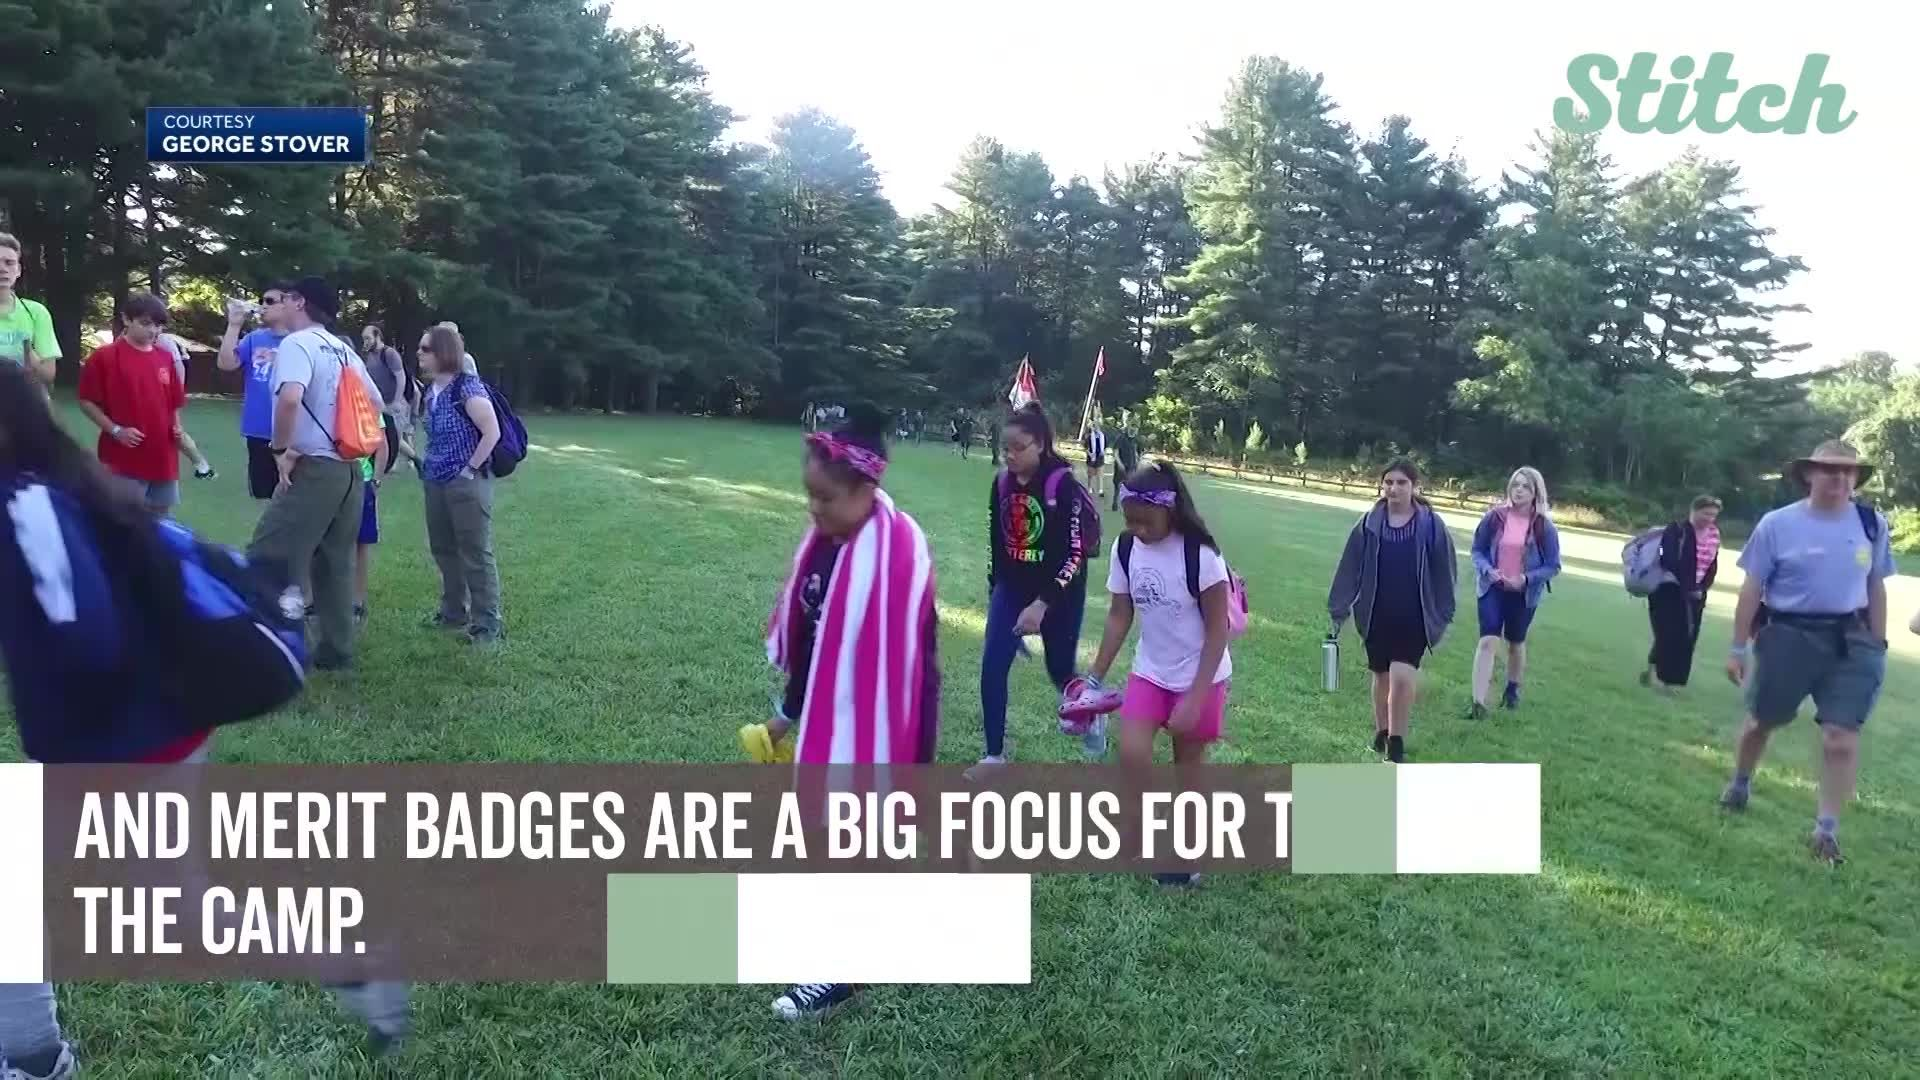 Newly integrated co-ed summer camp for scouts proves a success